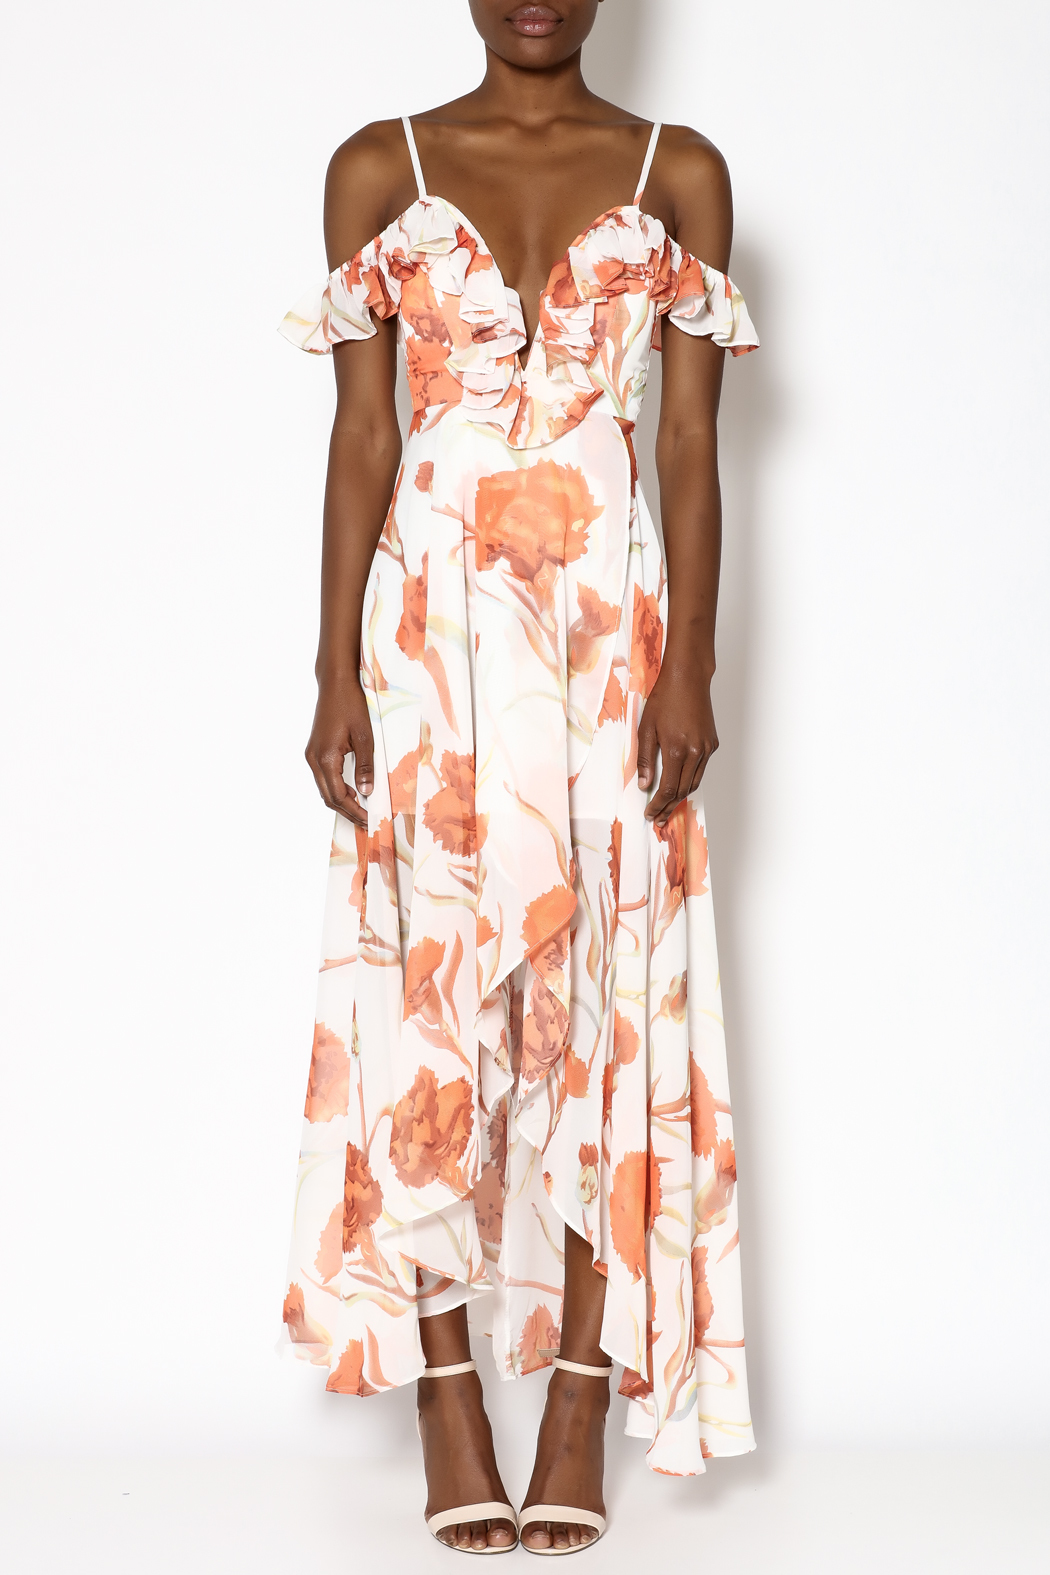 ad3ebe7d481 luxxel Orange Floral Dress from New York by Dor L Dor — Shoptiques